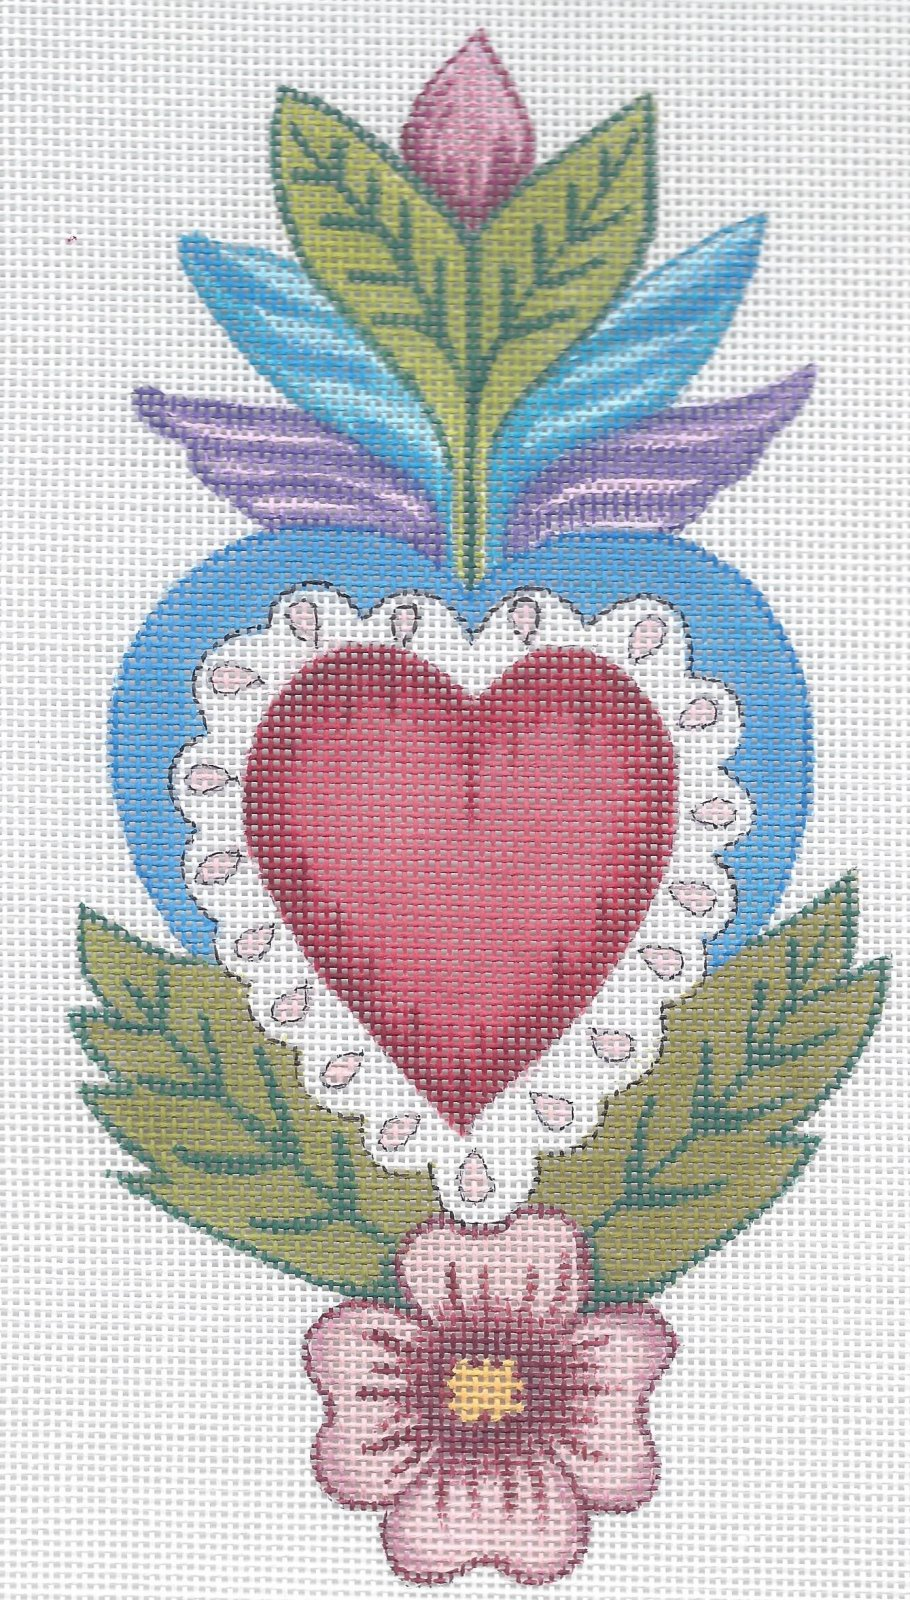 BEJF42 - CORAZON HEART WITH STITCH GUIDE